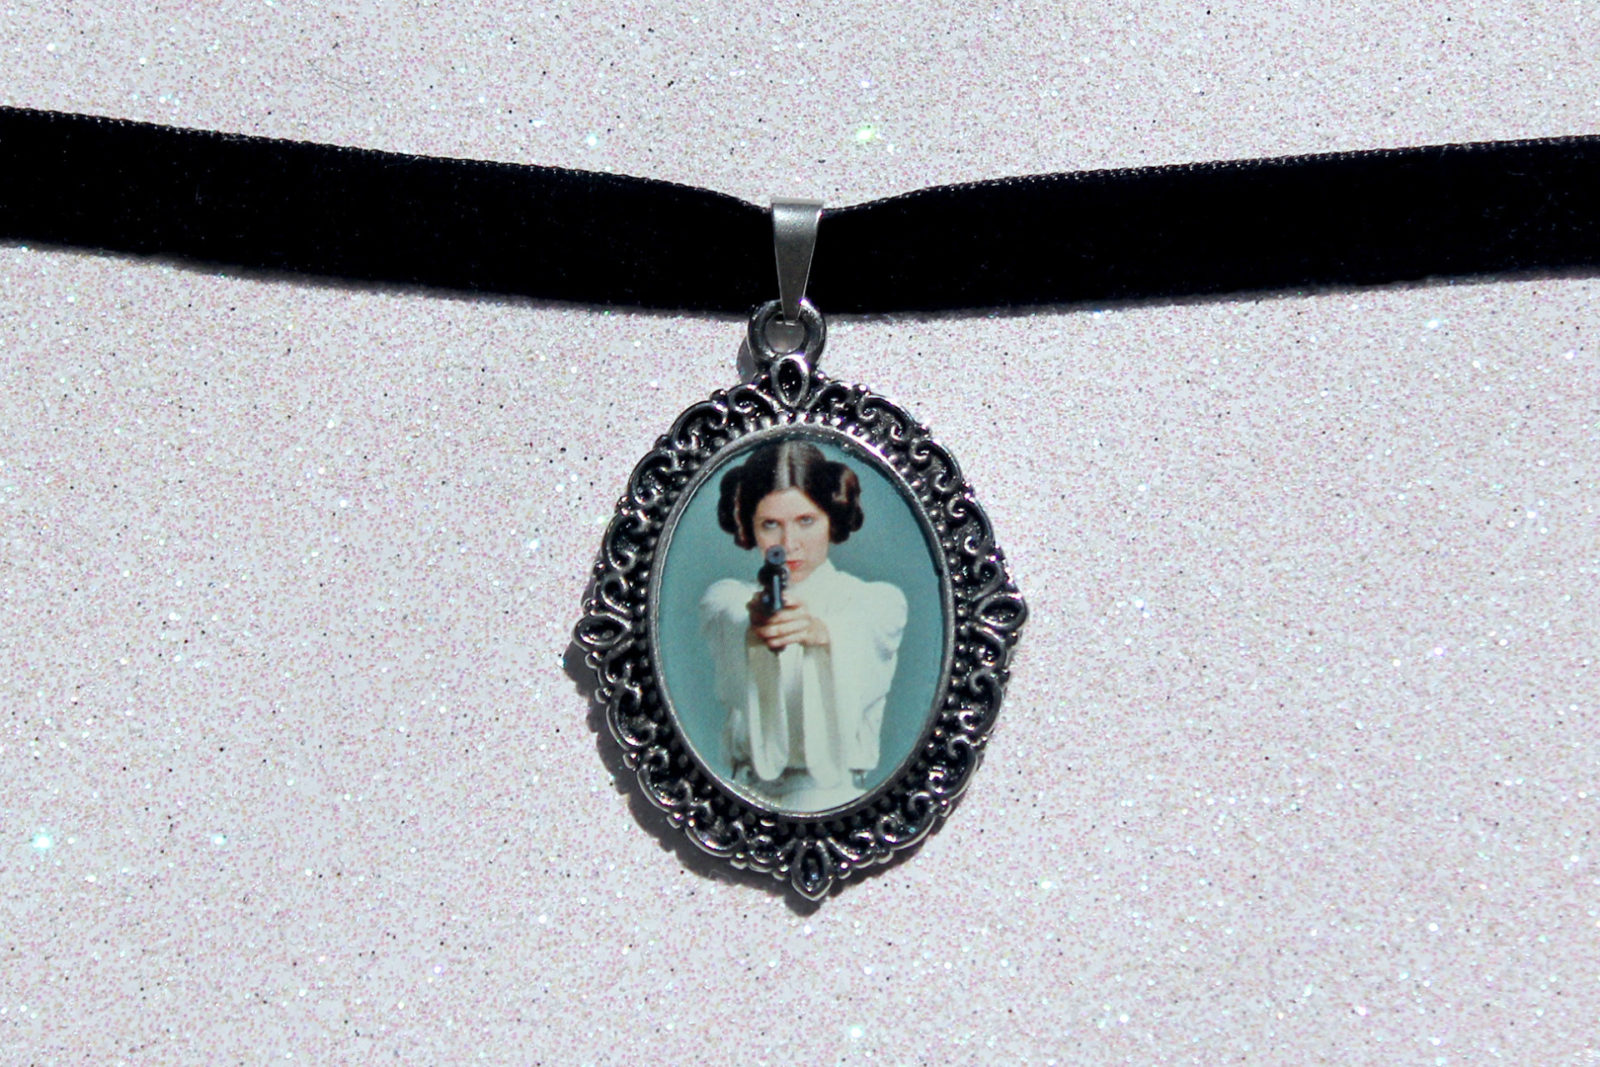 Review – Princess Leia cameo necklace